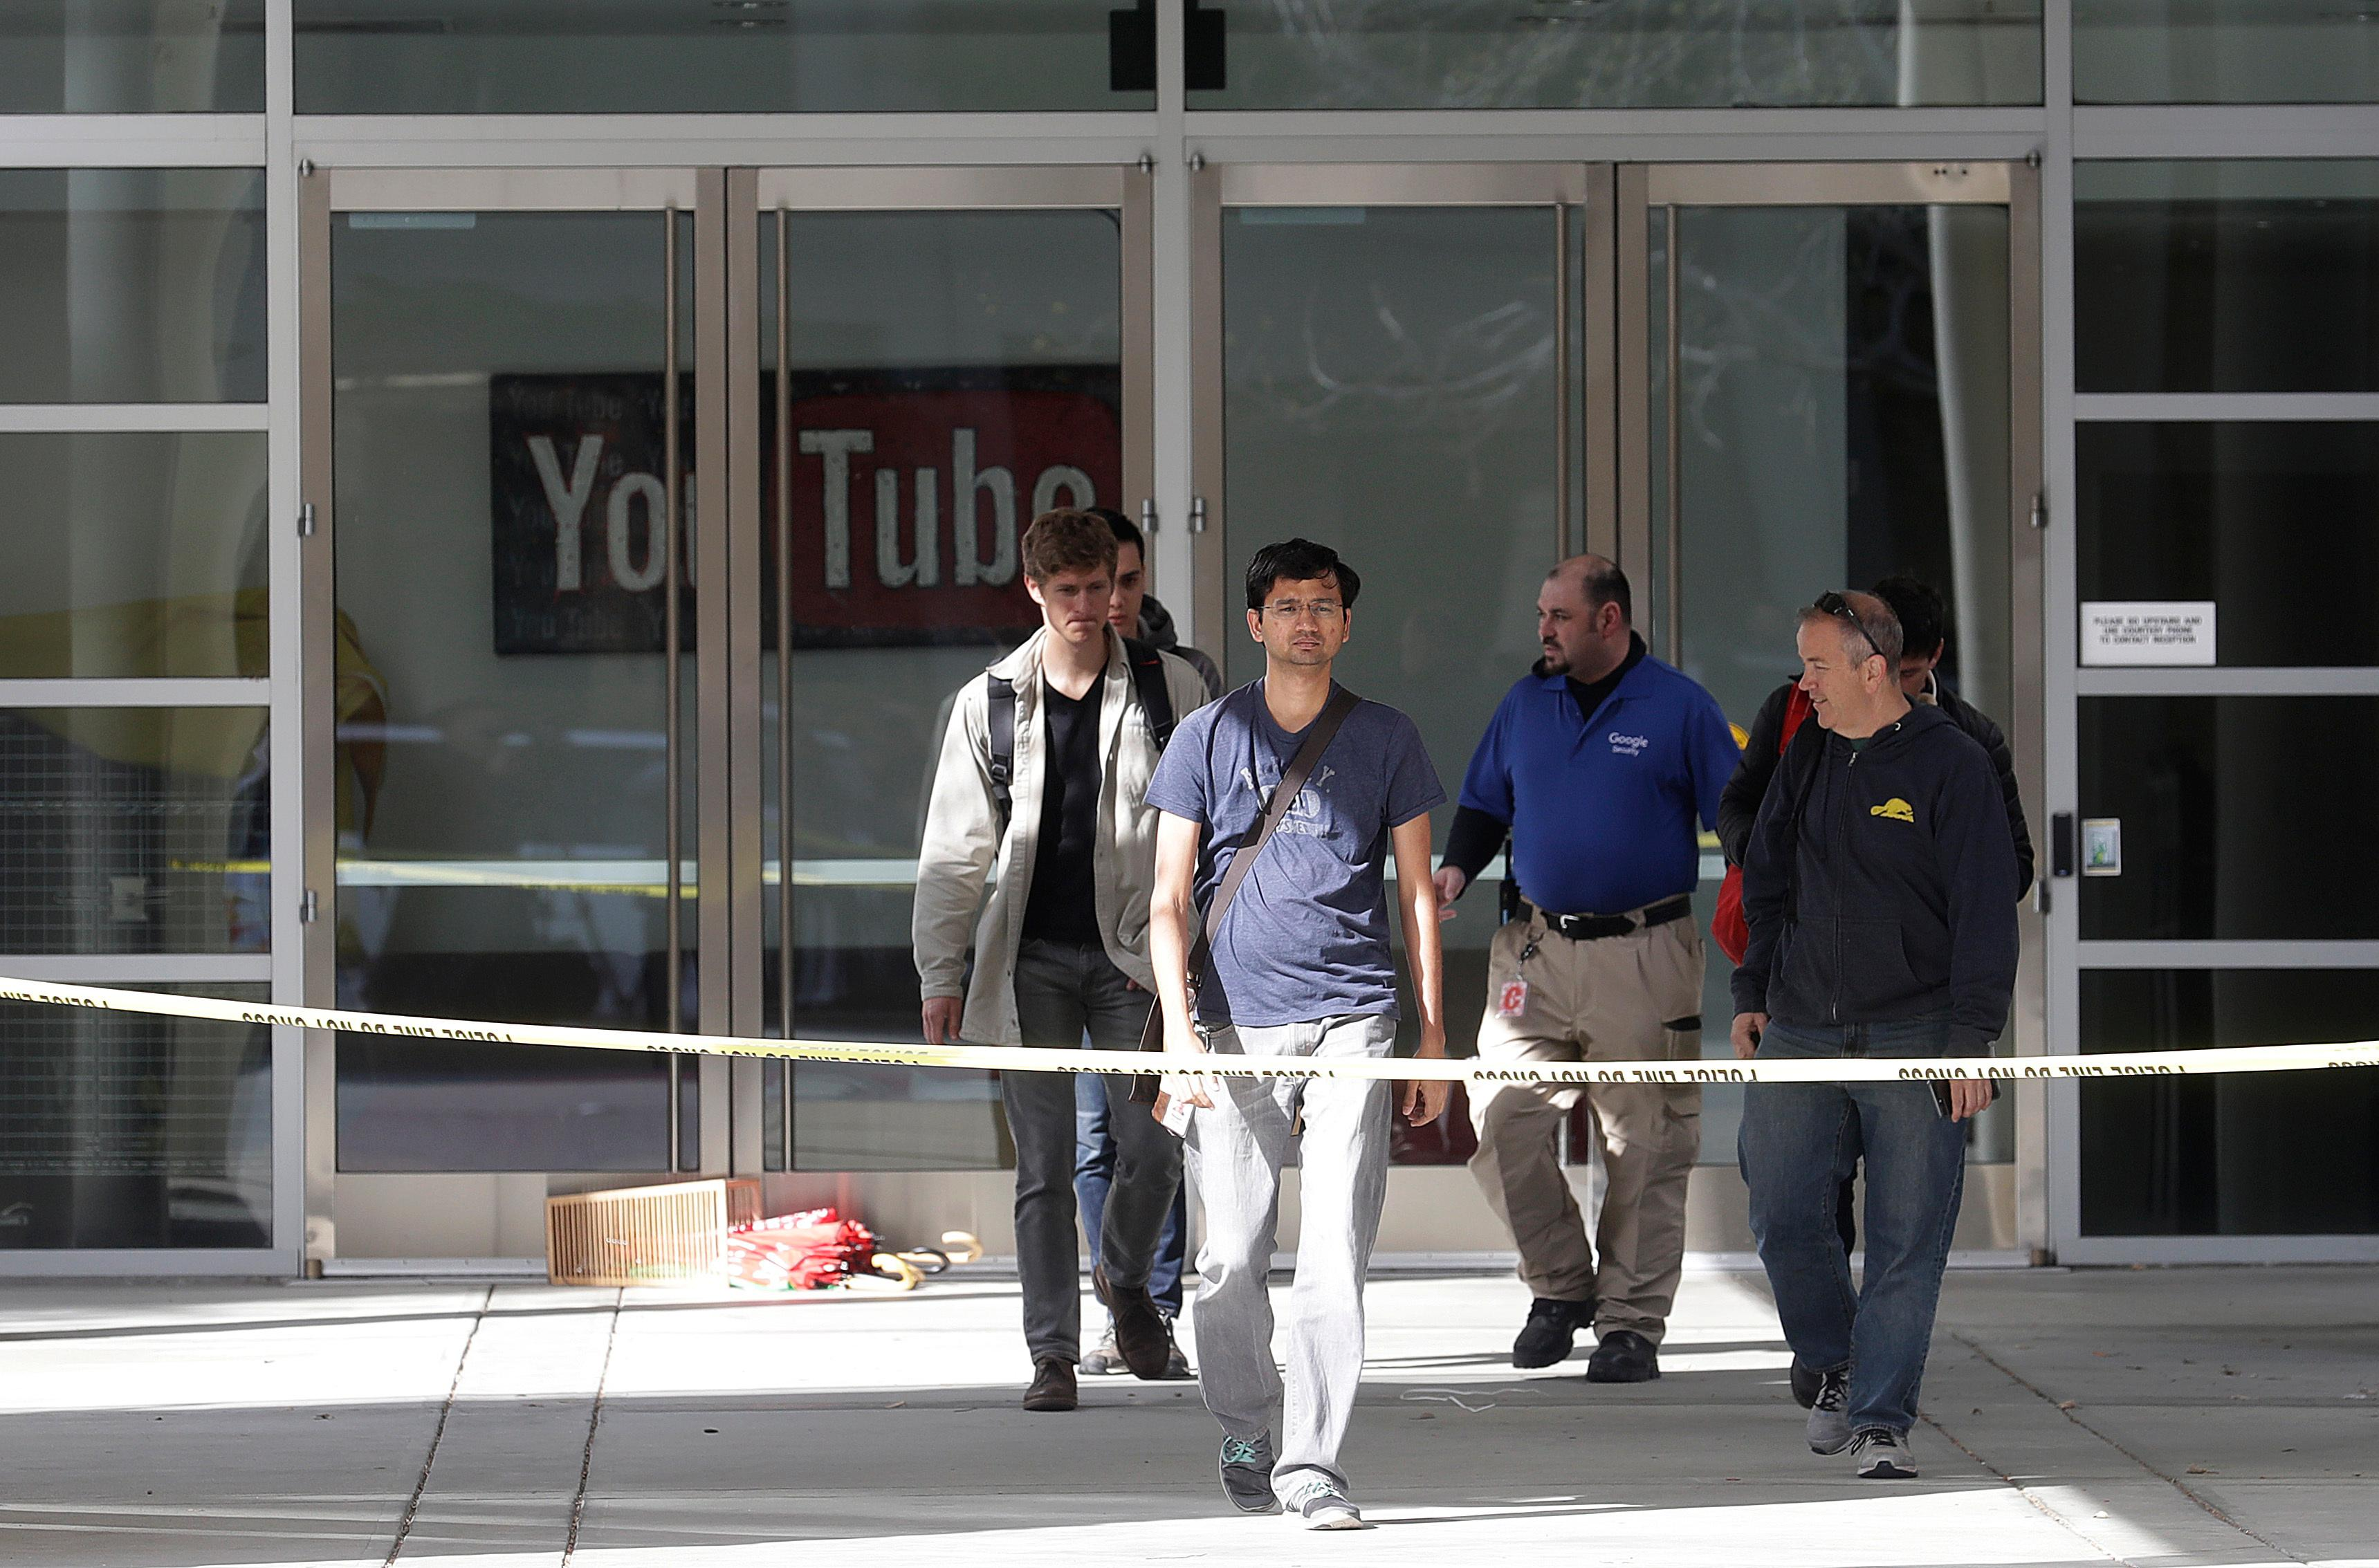 A group walks out of a YouTube office building in San Bruno, Calif., Wednesday, April 4, 2018. A woman suspected of shooting three people at YouTube headquarters before killing herself was furious with the company because it had stopped paying her for videos she posted on the platform, her father said Tuesday, April 3, 2018. (AP Photo/Jeff Chiu)